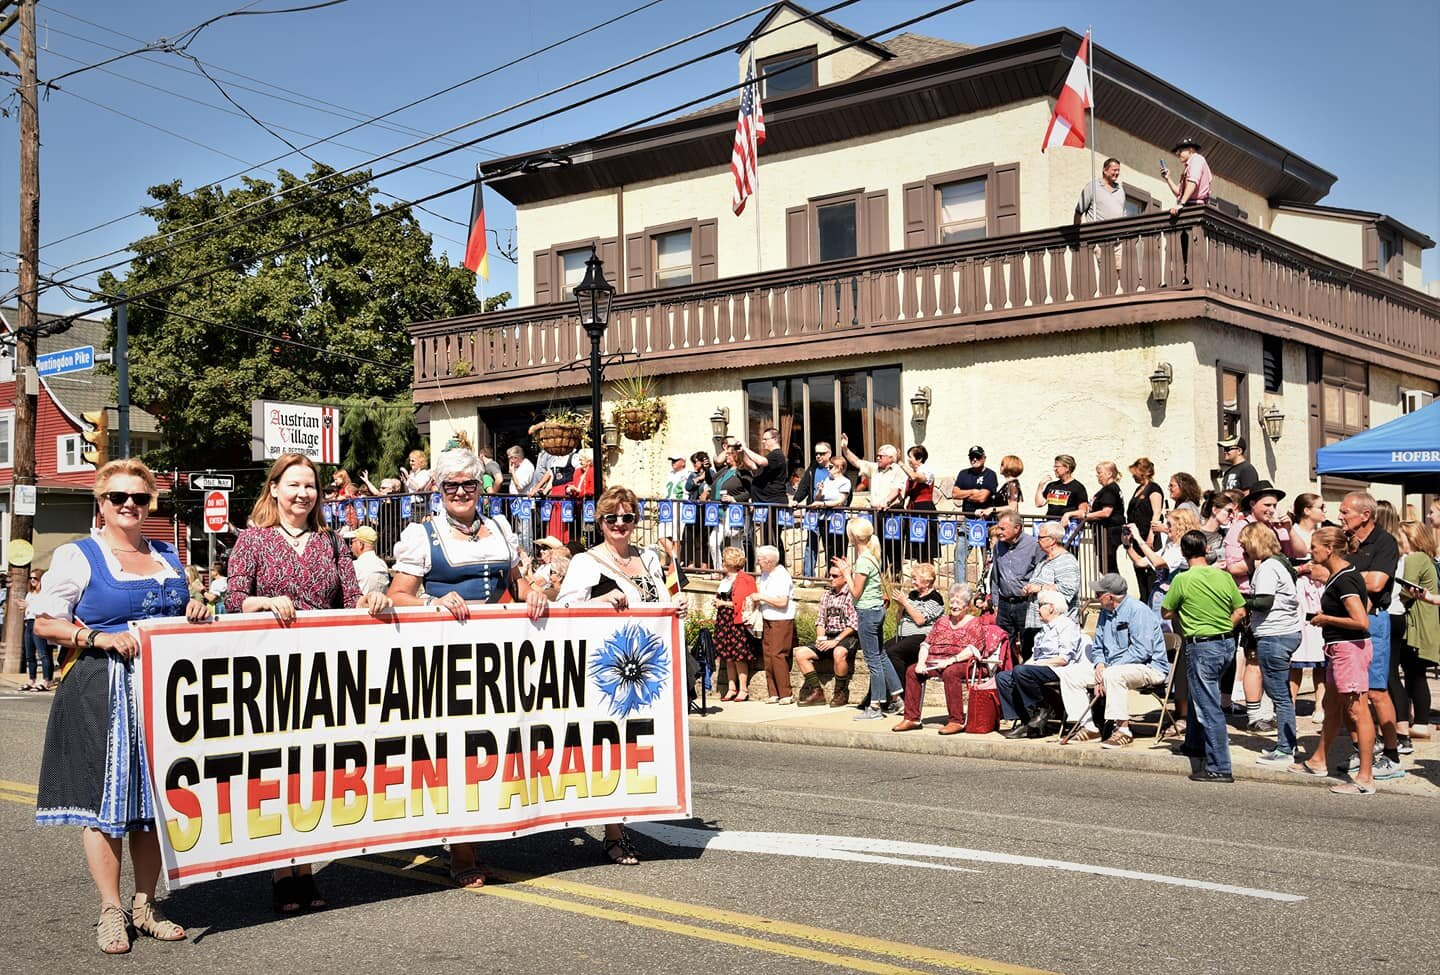 Time to hoist a stein in celebration of the 62nd annual Steuben Parade:   Photo Credit: German-American Steuben Committee of Greater New York/Facebook